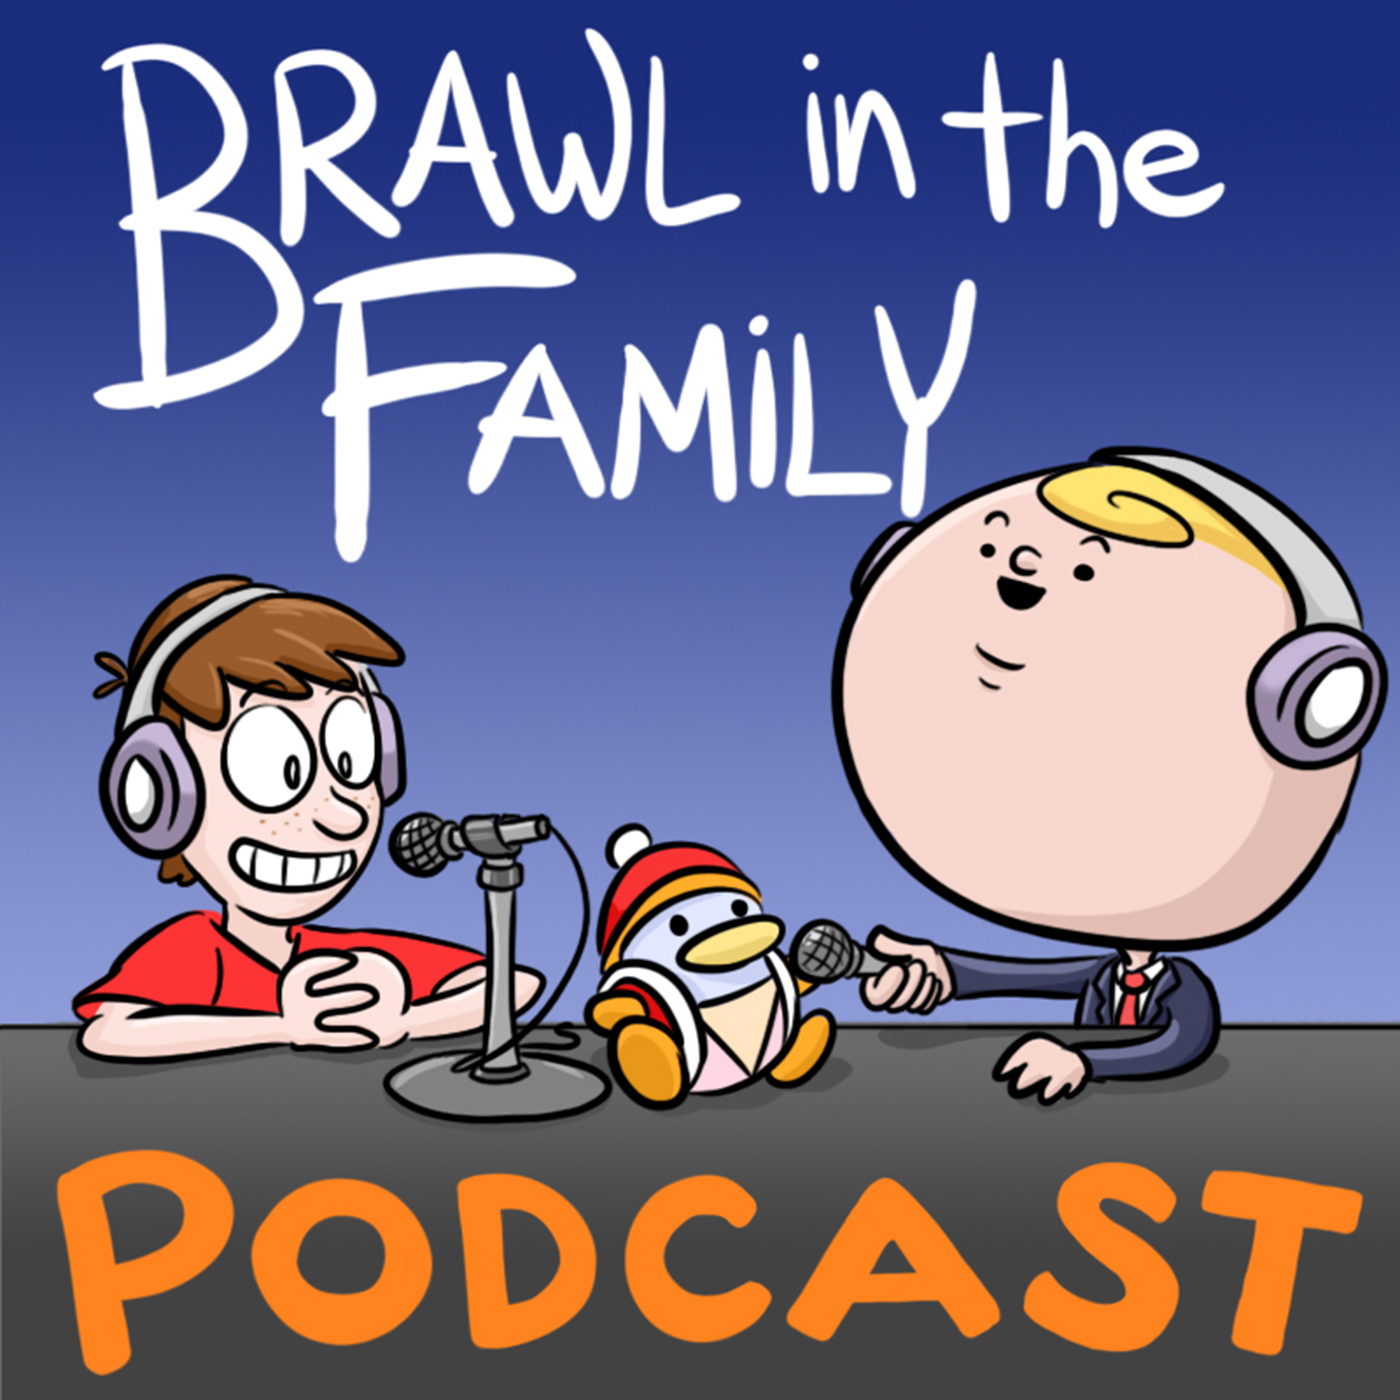 The Brawl in the Family Podcast